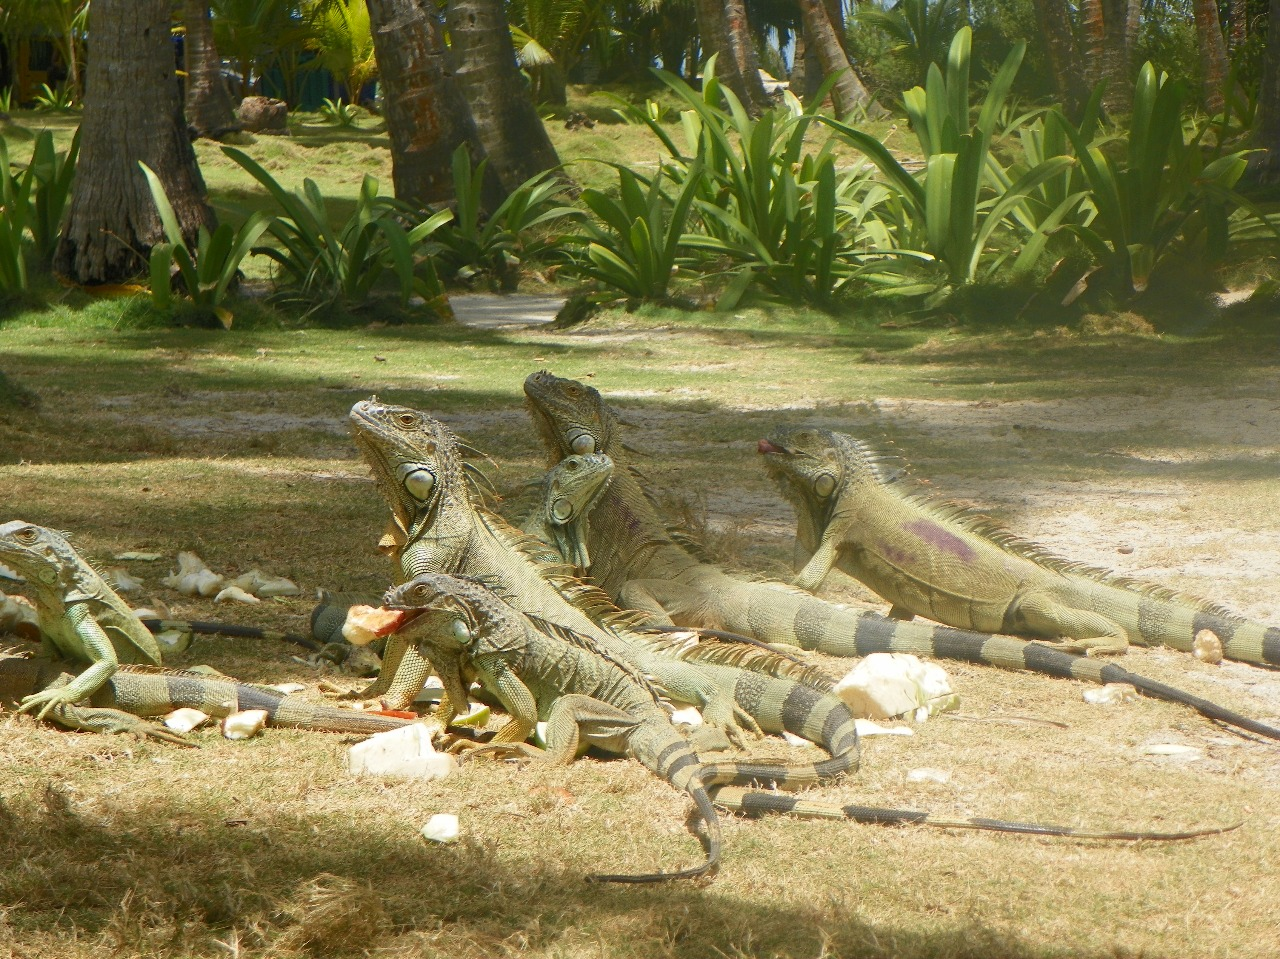 Iguanas - Johnny Cay Tour - Colombia - ColombiaTours.Travel - San Andres Islands